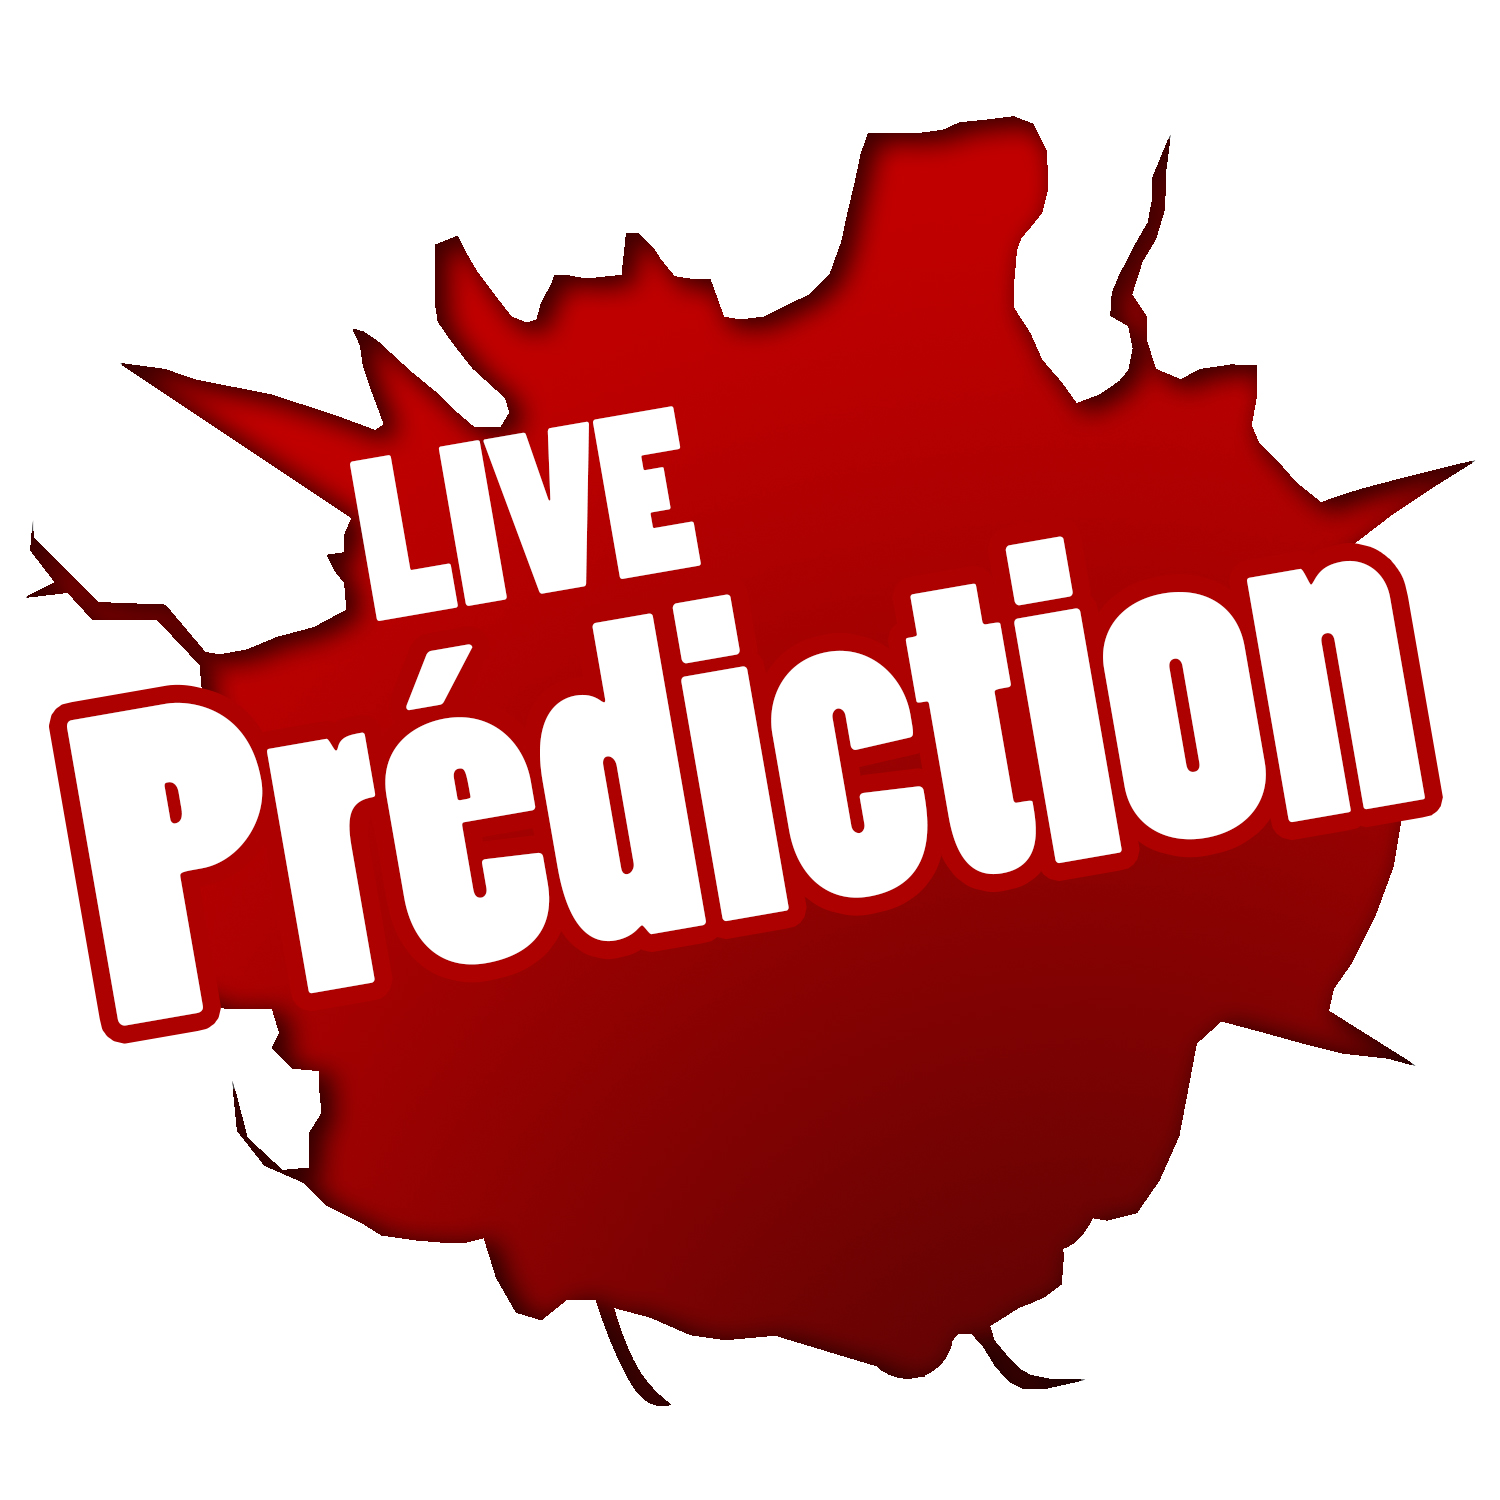 Live pre diction logo